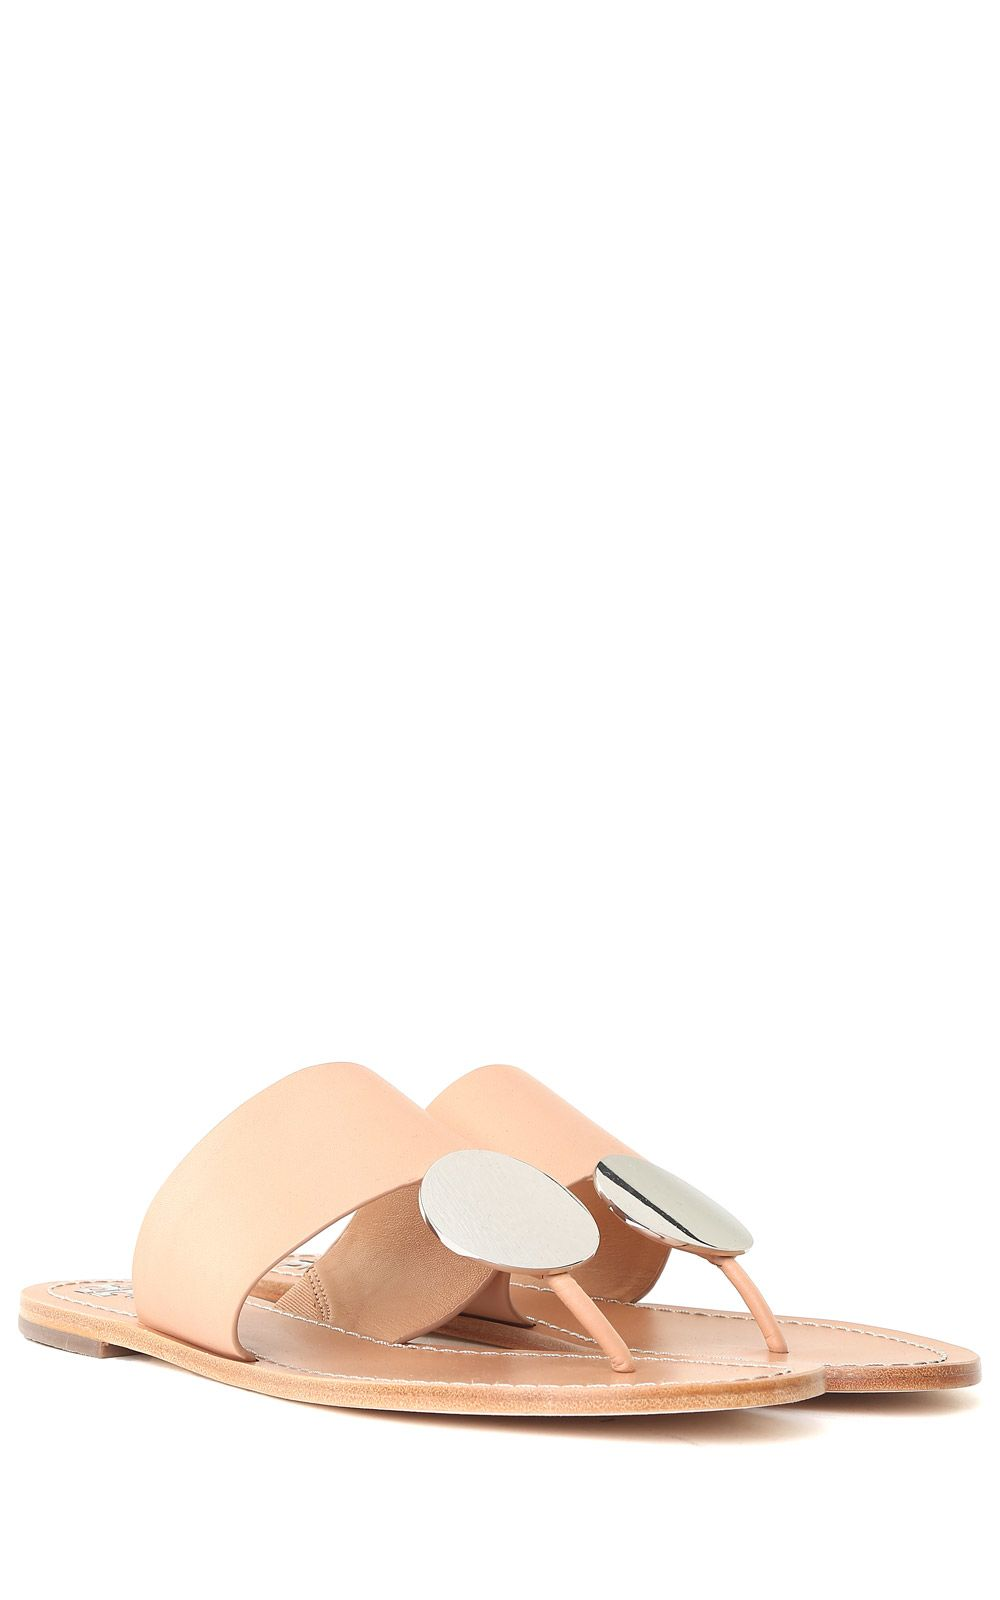 55a977b2d05 ... Tory Burch Patos Disc Smooth-leather Thong Sandals - Beige ...